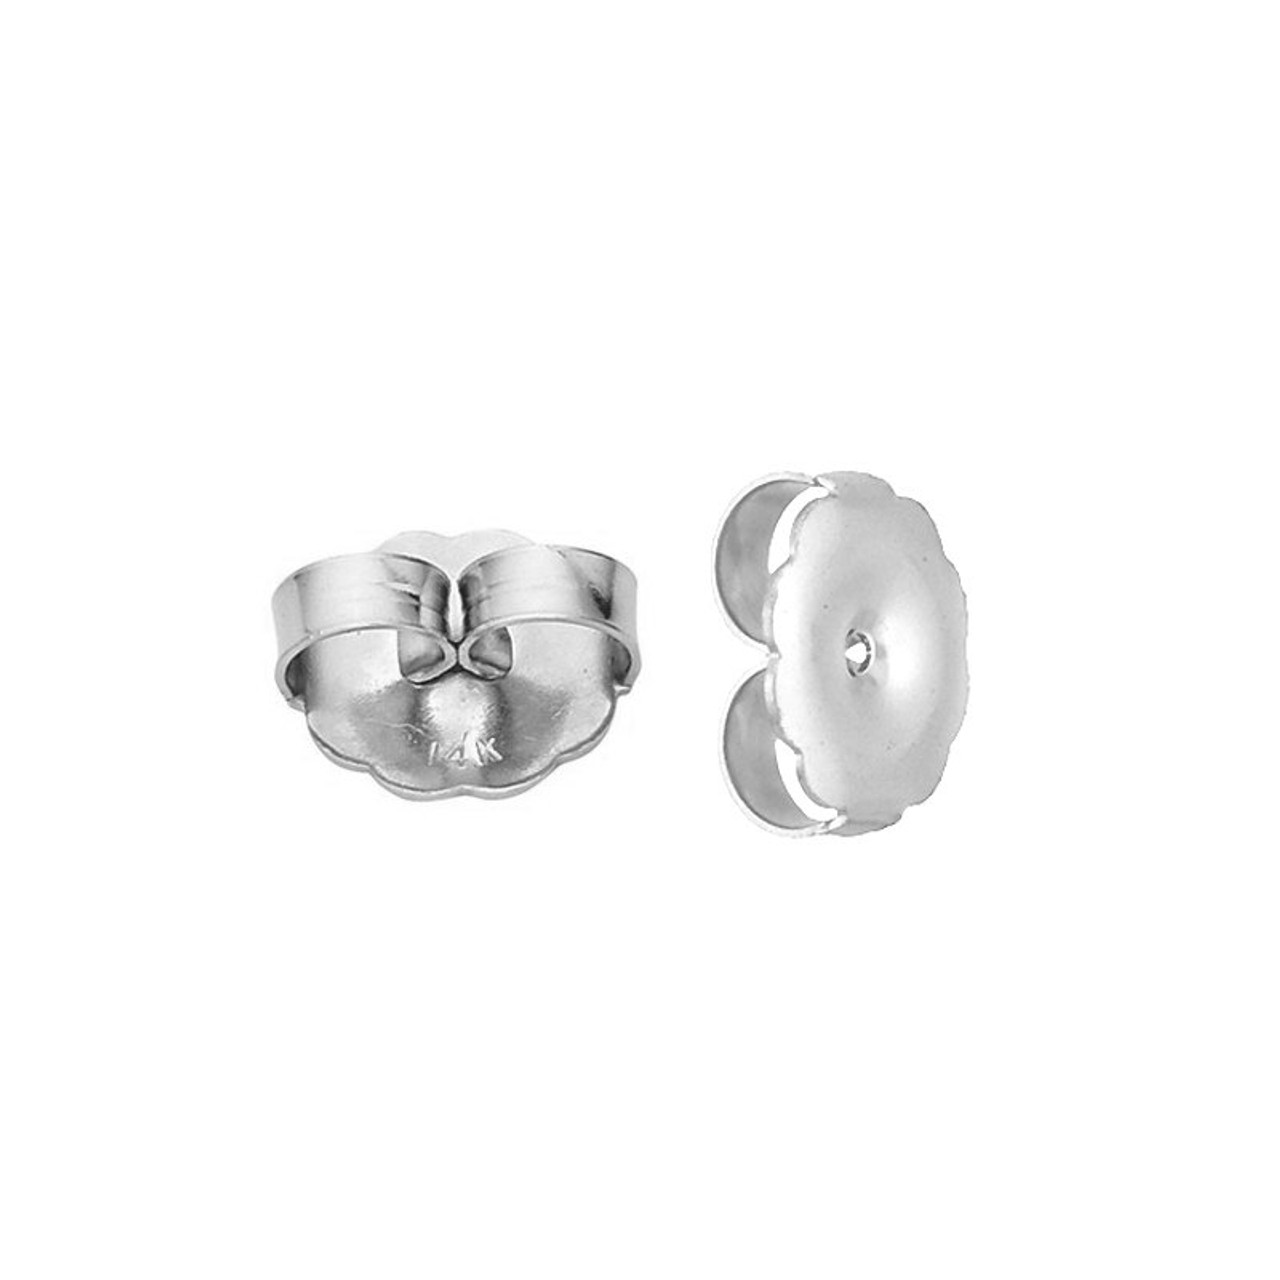 eb4c8cd0c Jumbo Solid White Gold Large Safety Replacement Earring Backs